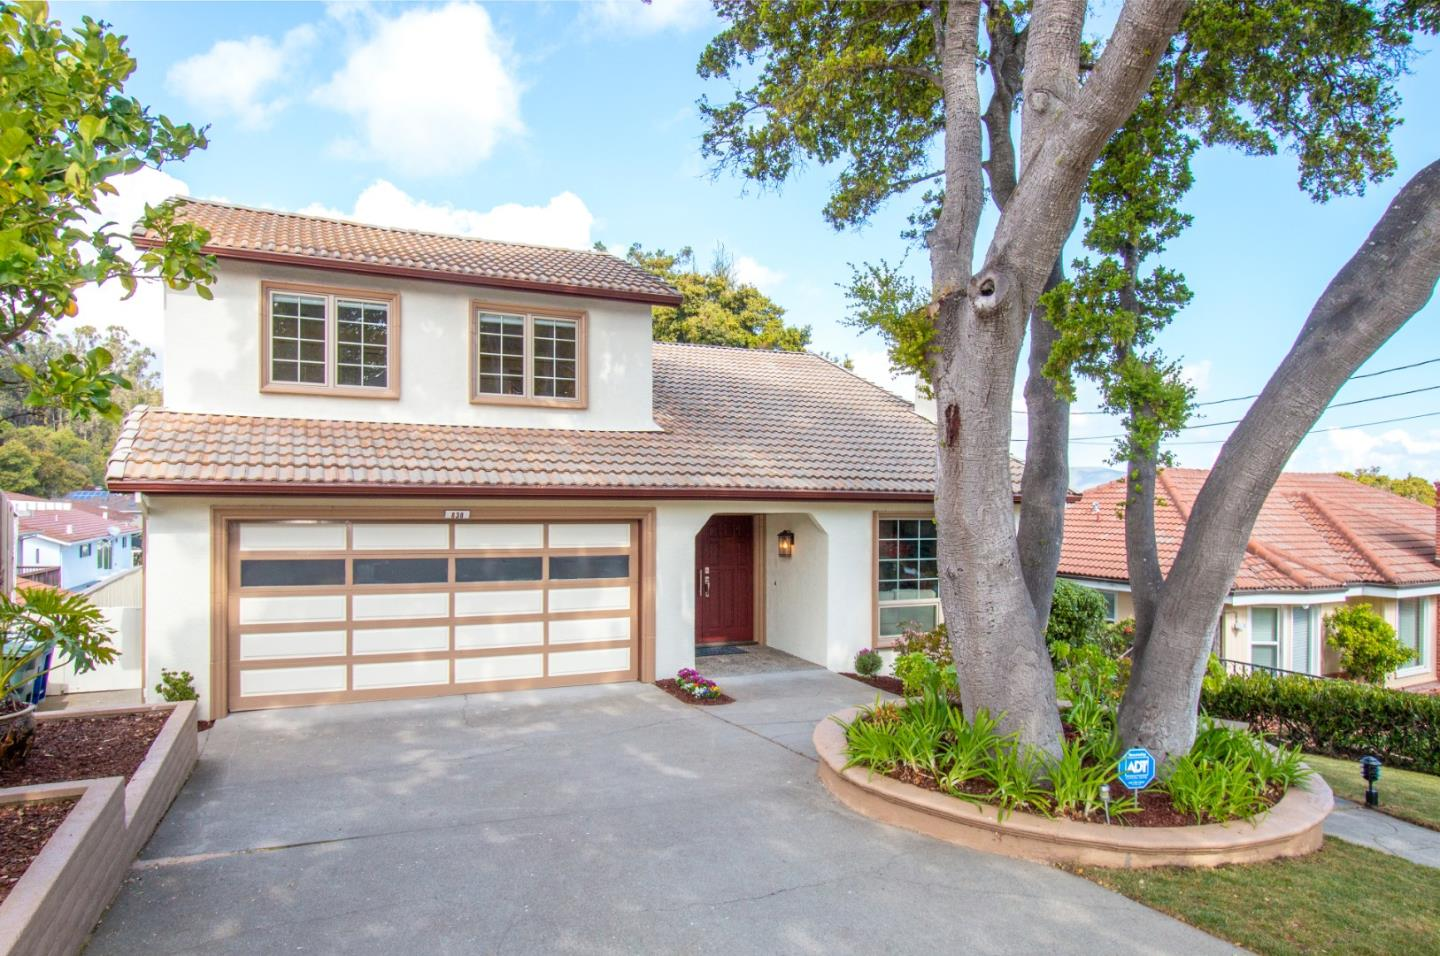 Detail Gallery Image 1 of 22 For 838 Capuchino Dr, Millbrae, CA 94030 - 4 Beds   3/1 Baths